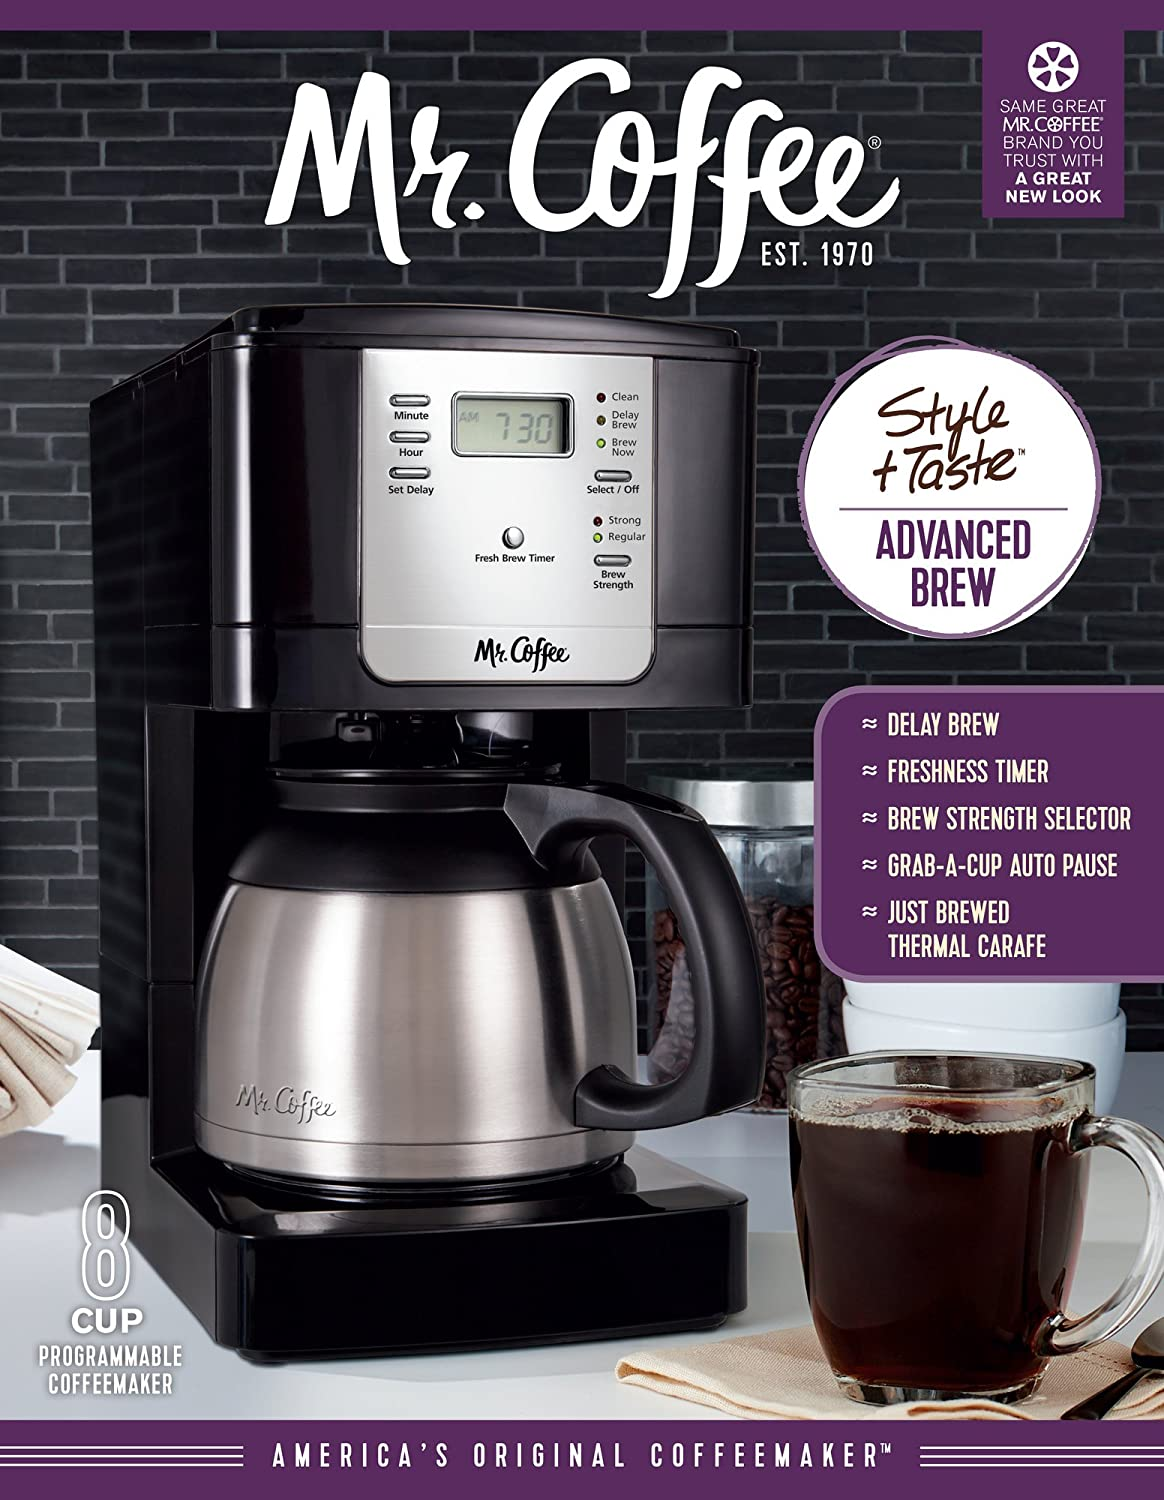 Amazon.com: Mr. Coffee JWTX85 8-Cup Thermal Coffeemaker, Stainless Steel:  Drip Coffeemakers: Kitchen & Dining